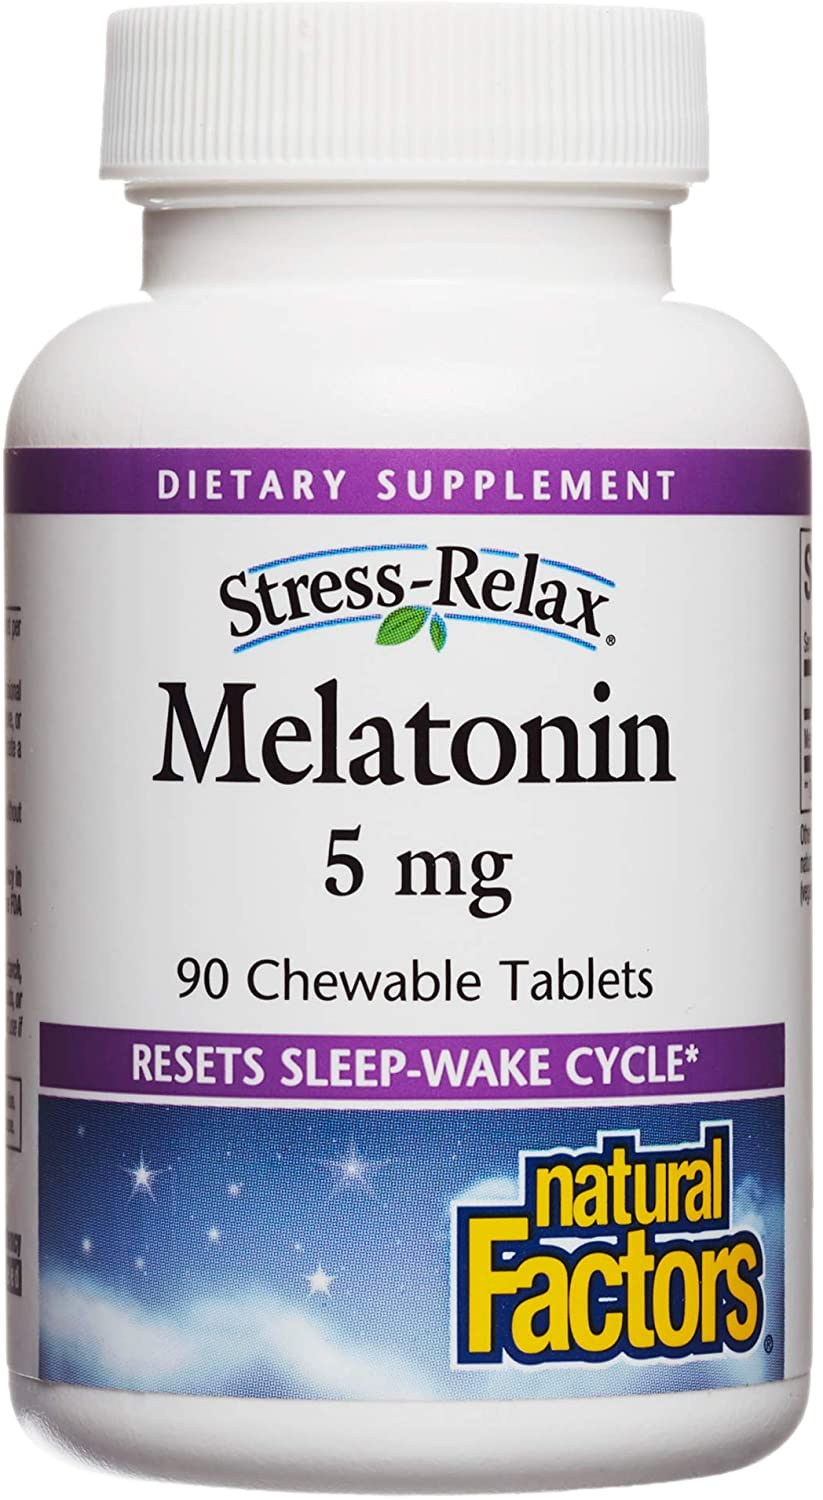 Stress-Relax Melatonin 5 mg by Natural Factors, Natural Sleep Aid, Resets the Sleep-Wake Cycle, 90 chewable tablets (90 servings), Peppermint Flavor